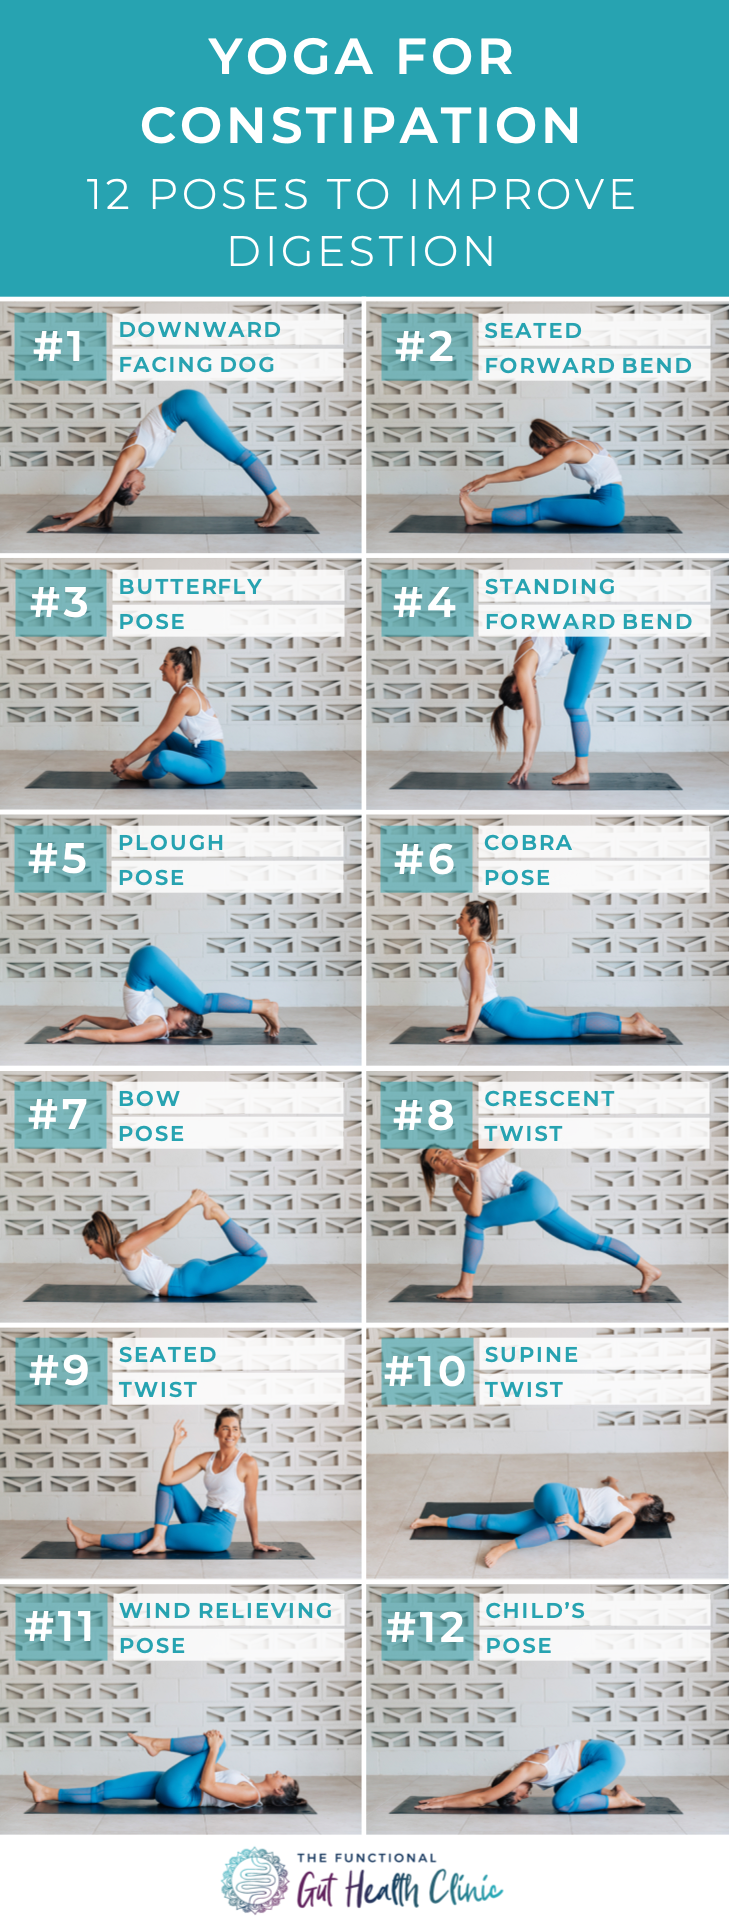 Yoga Positions For Constipation